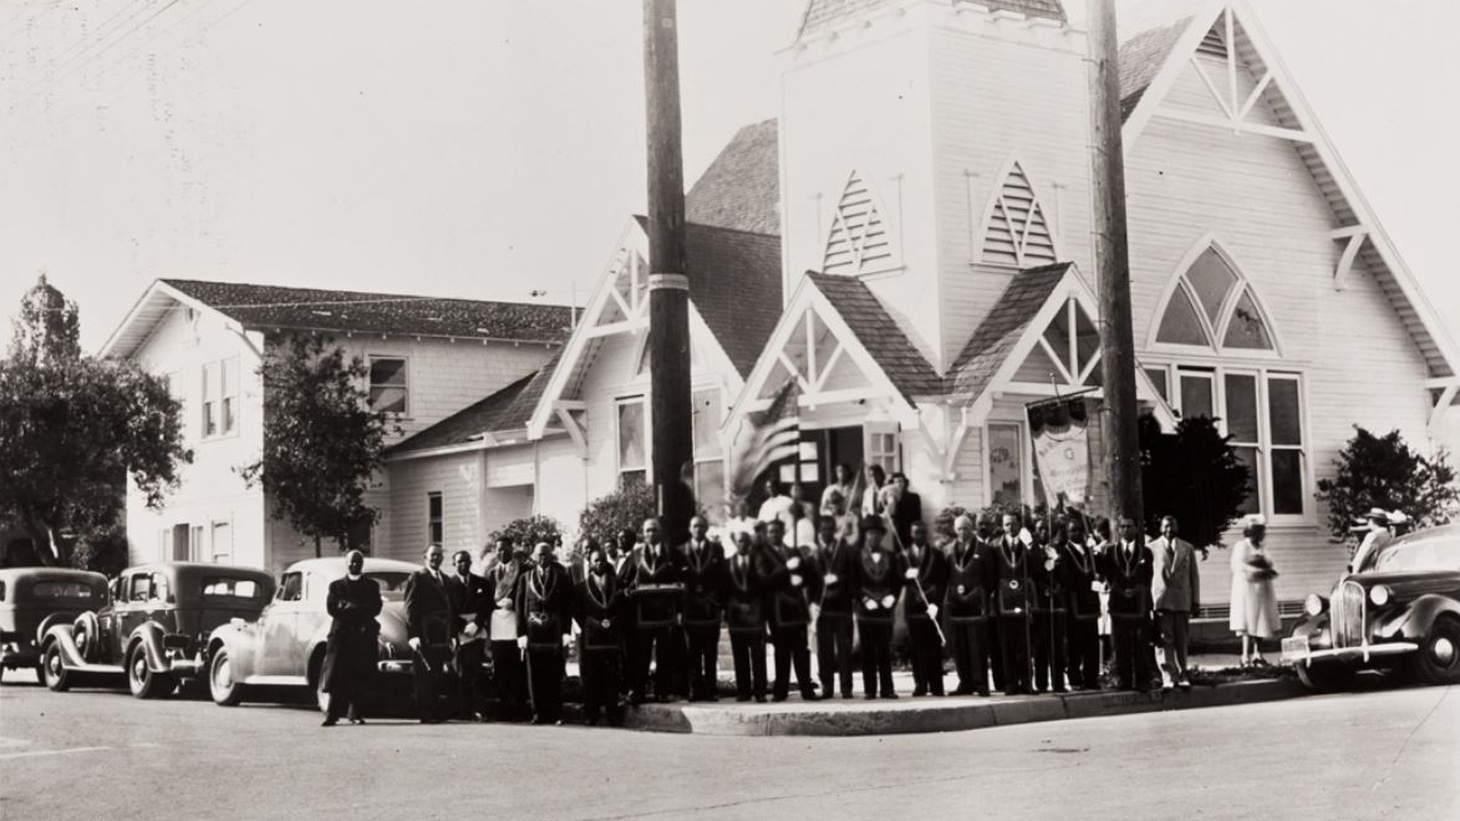 Group portrait outside the St. Paul A.M.E. Church, on the corner of Olive and Haley Street in Santa Barbara.